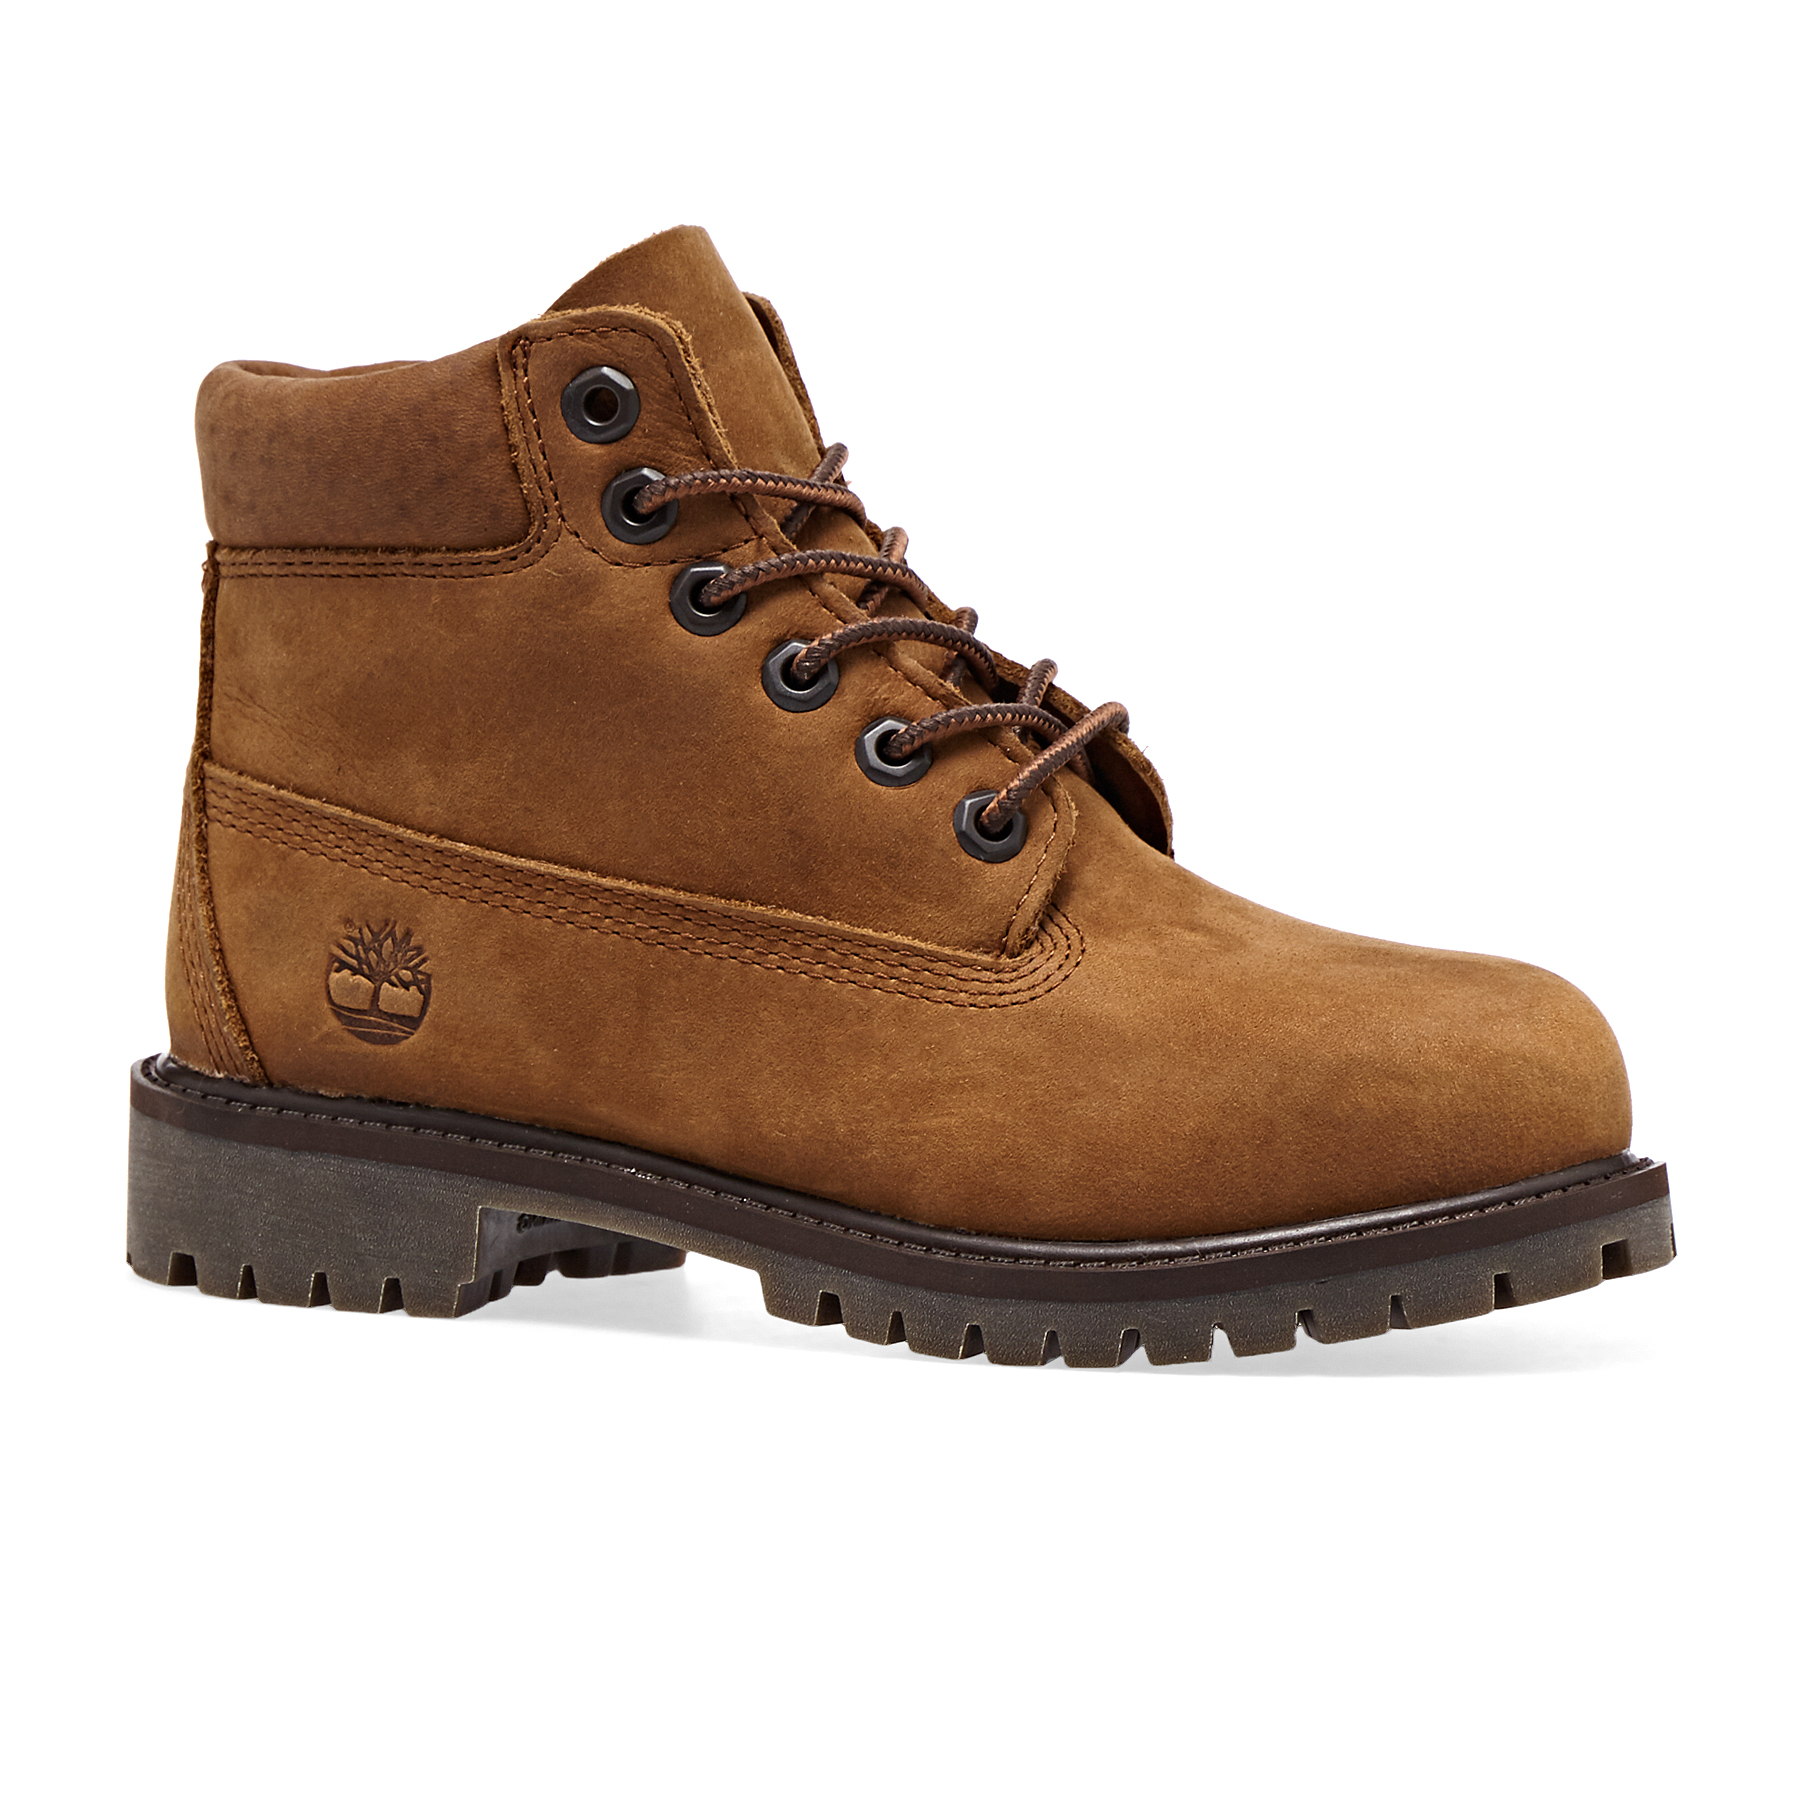 Timberland Clothing & Accessories Gratis levering * til  Free Delivery* at